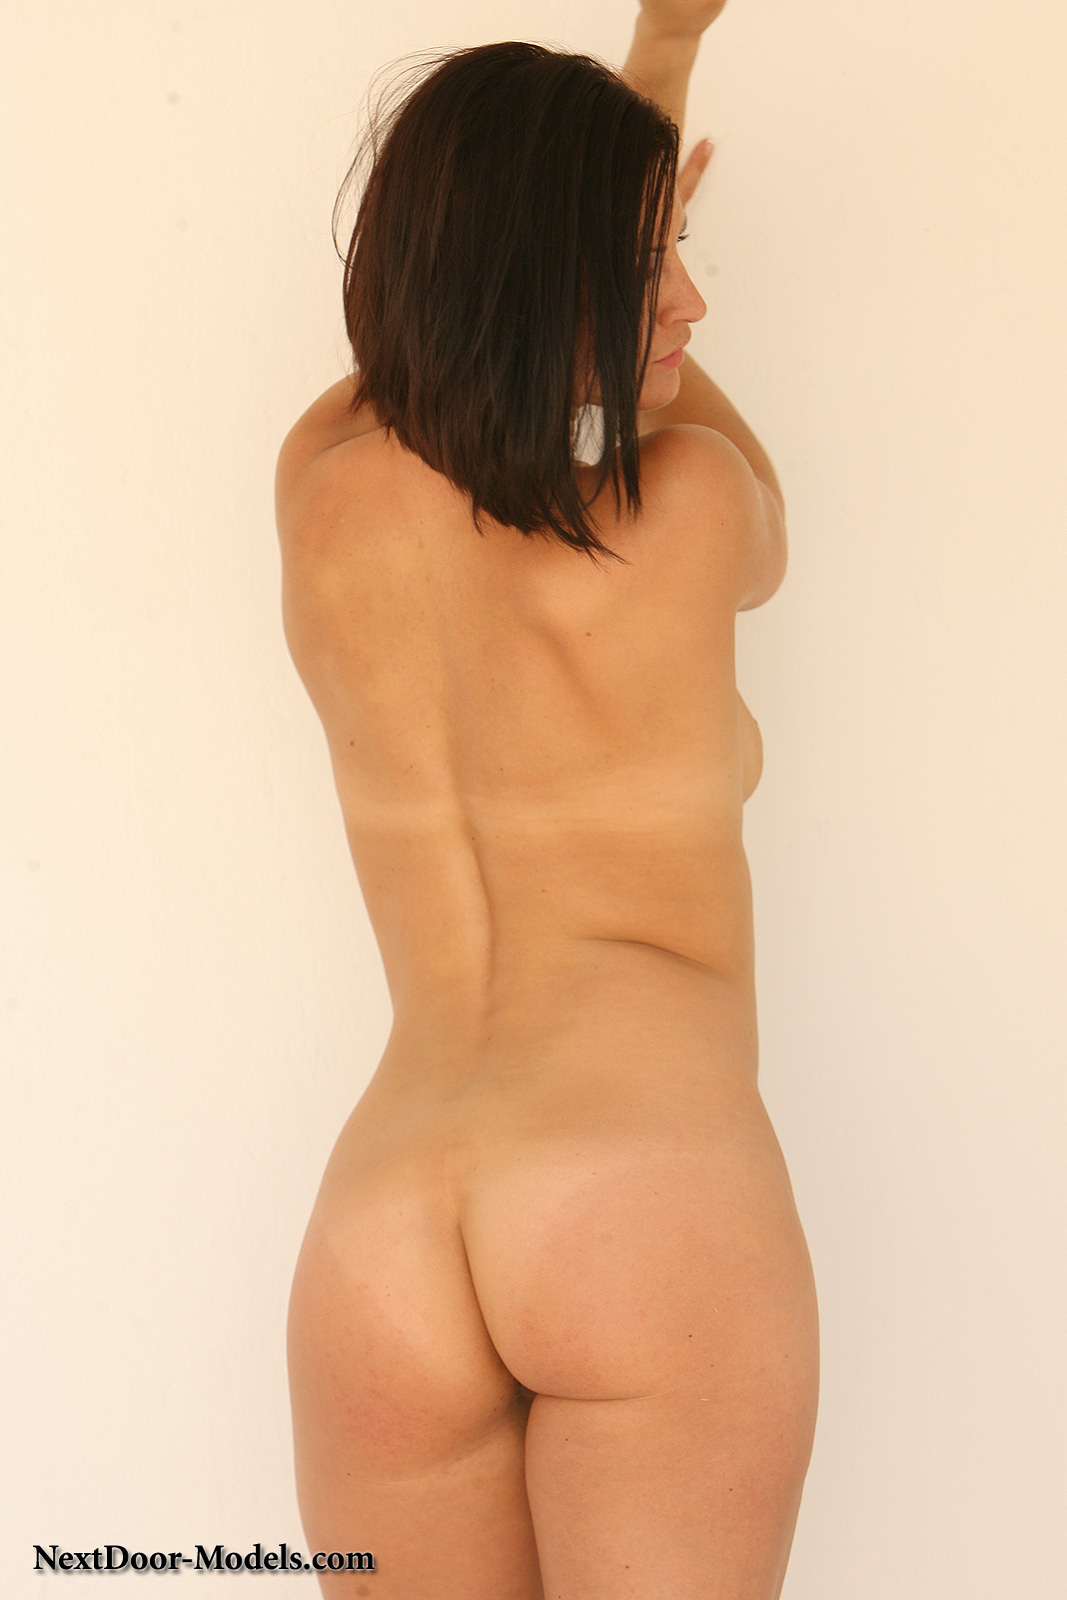 galleries nextdoor models content 214 img 14